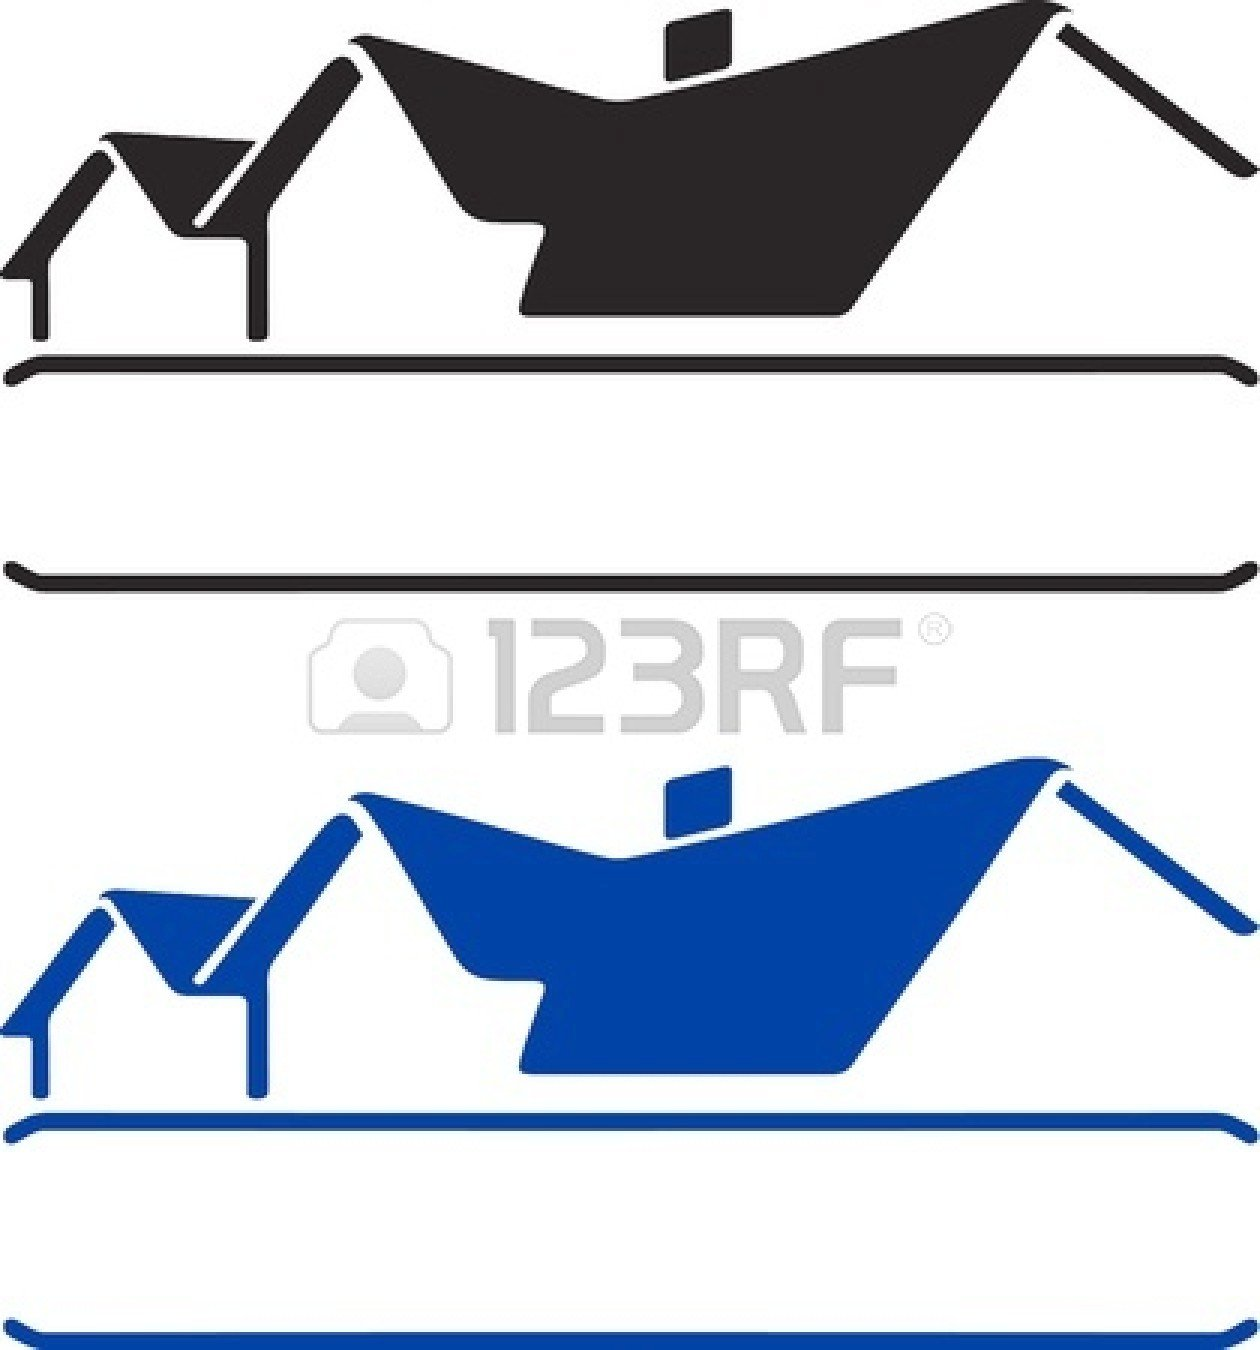 Roofing clipart. Roof at getdrawings com